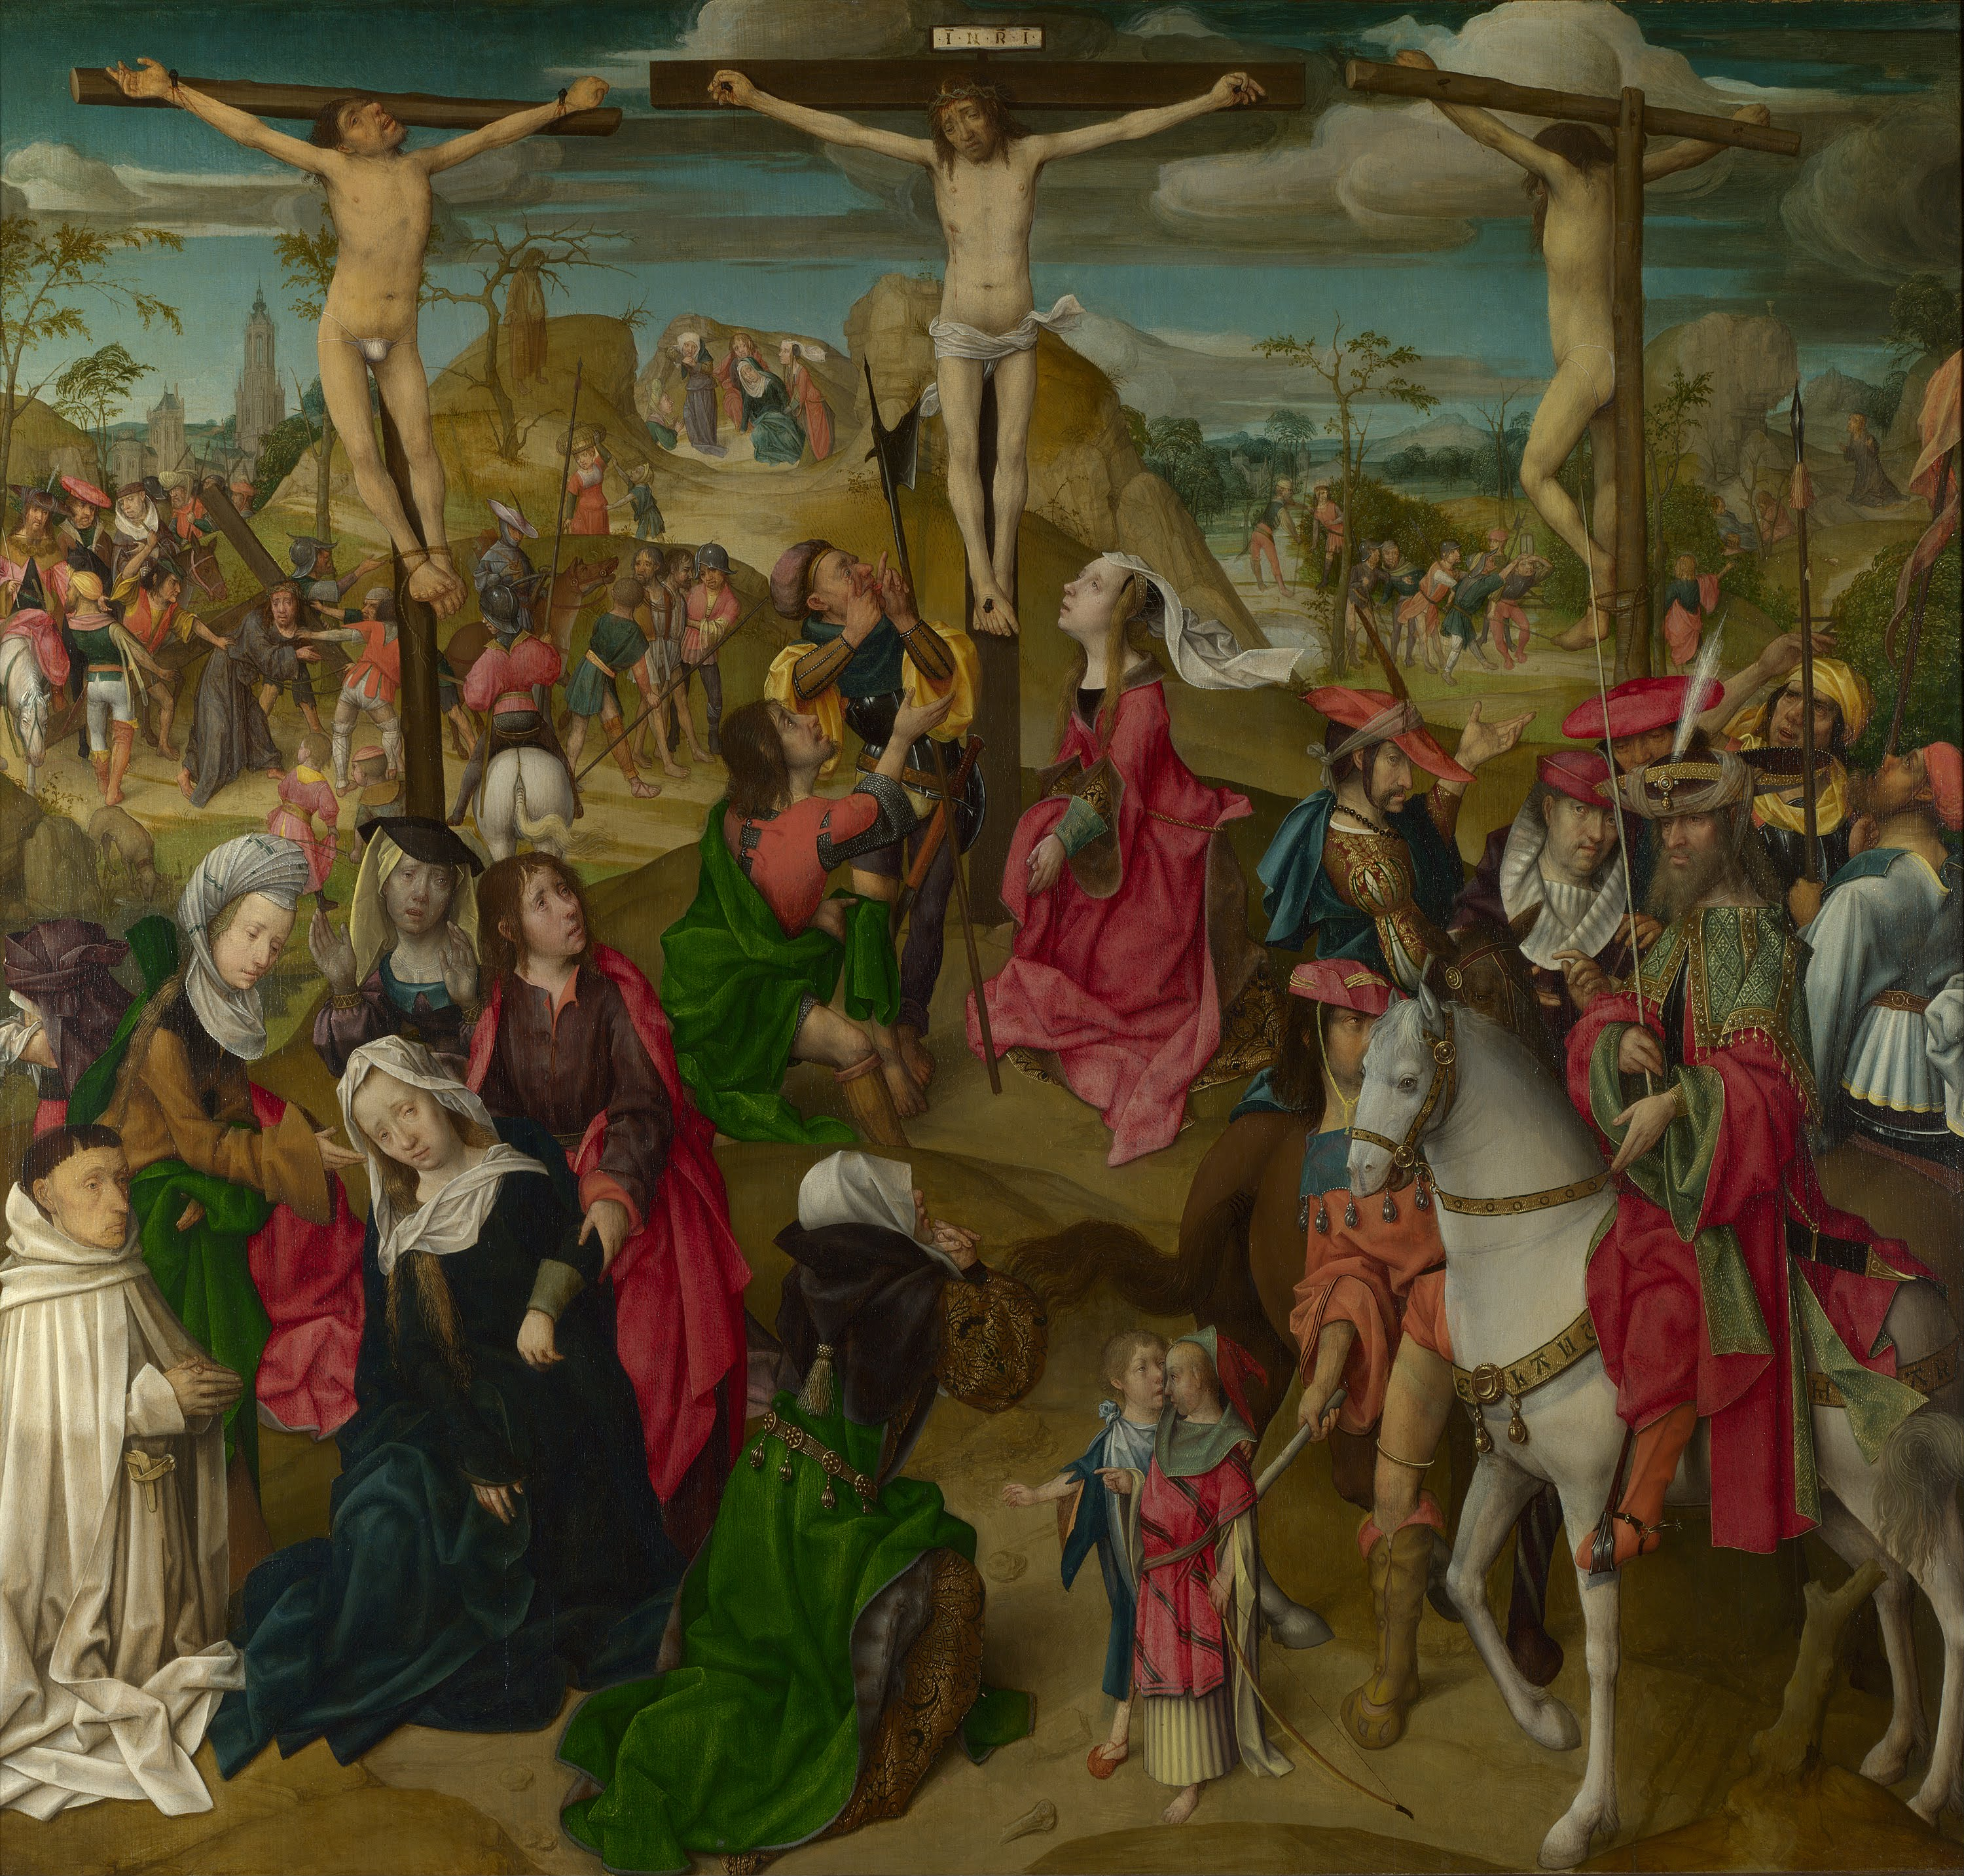 Master_of_Delft_-_The_Crucifixion-_Central_Panel_-_Google_Art_Project